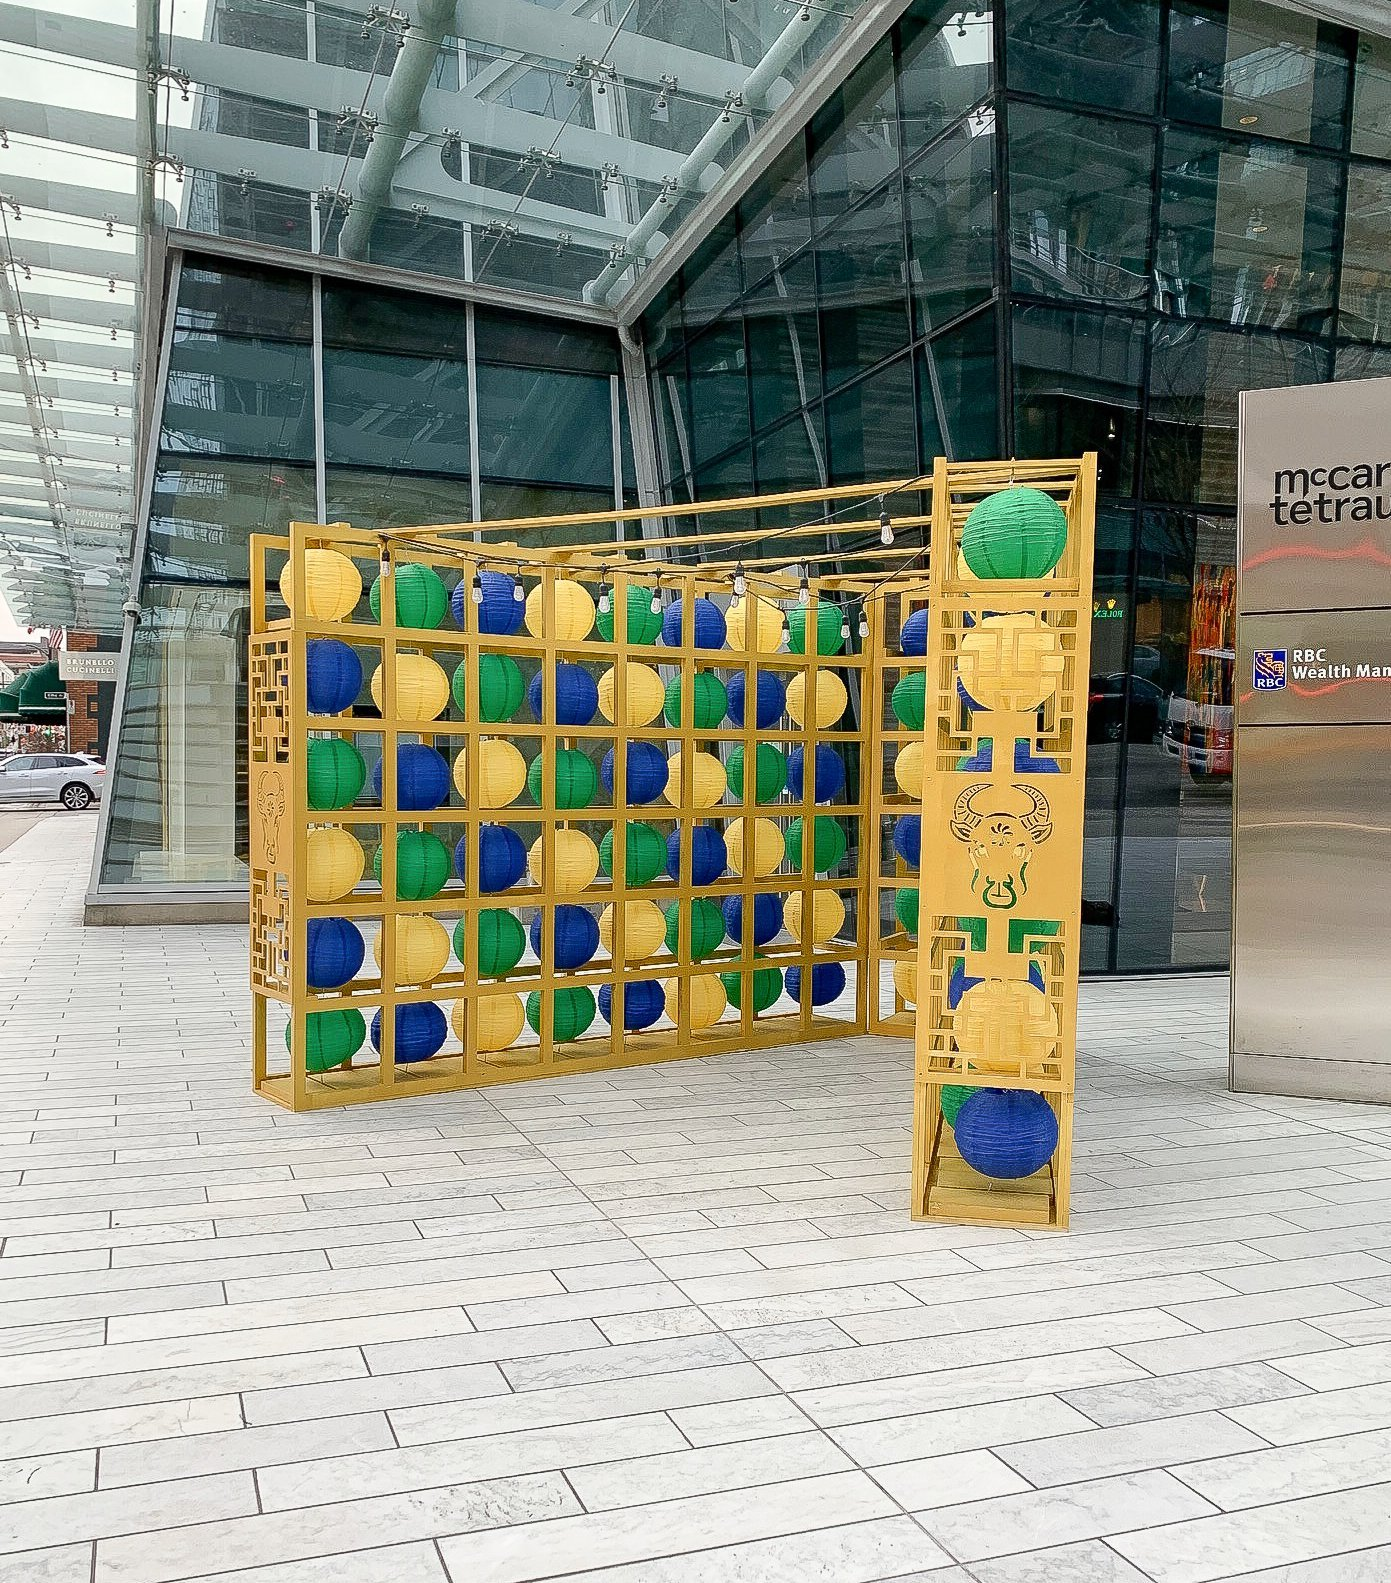 Outdoor downtown vancouver courtyard display of non-traditional yellow green and blue lanterns for lunar new year